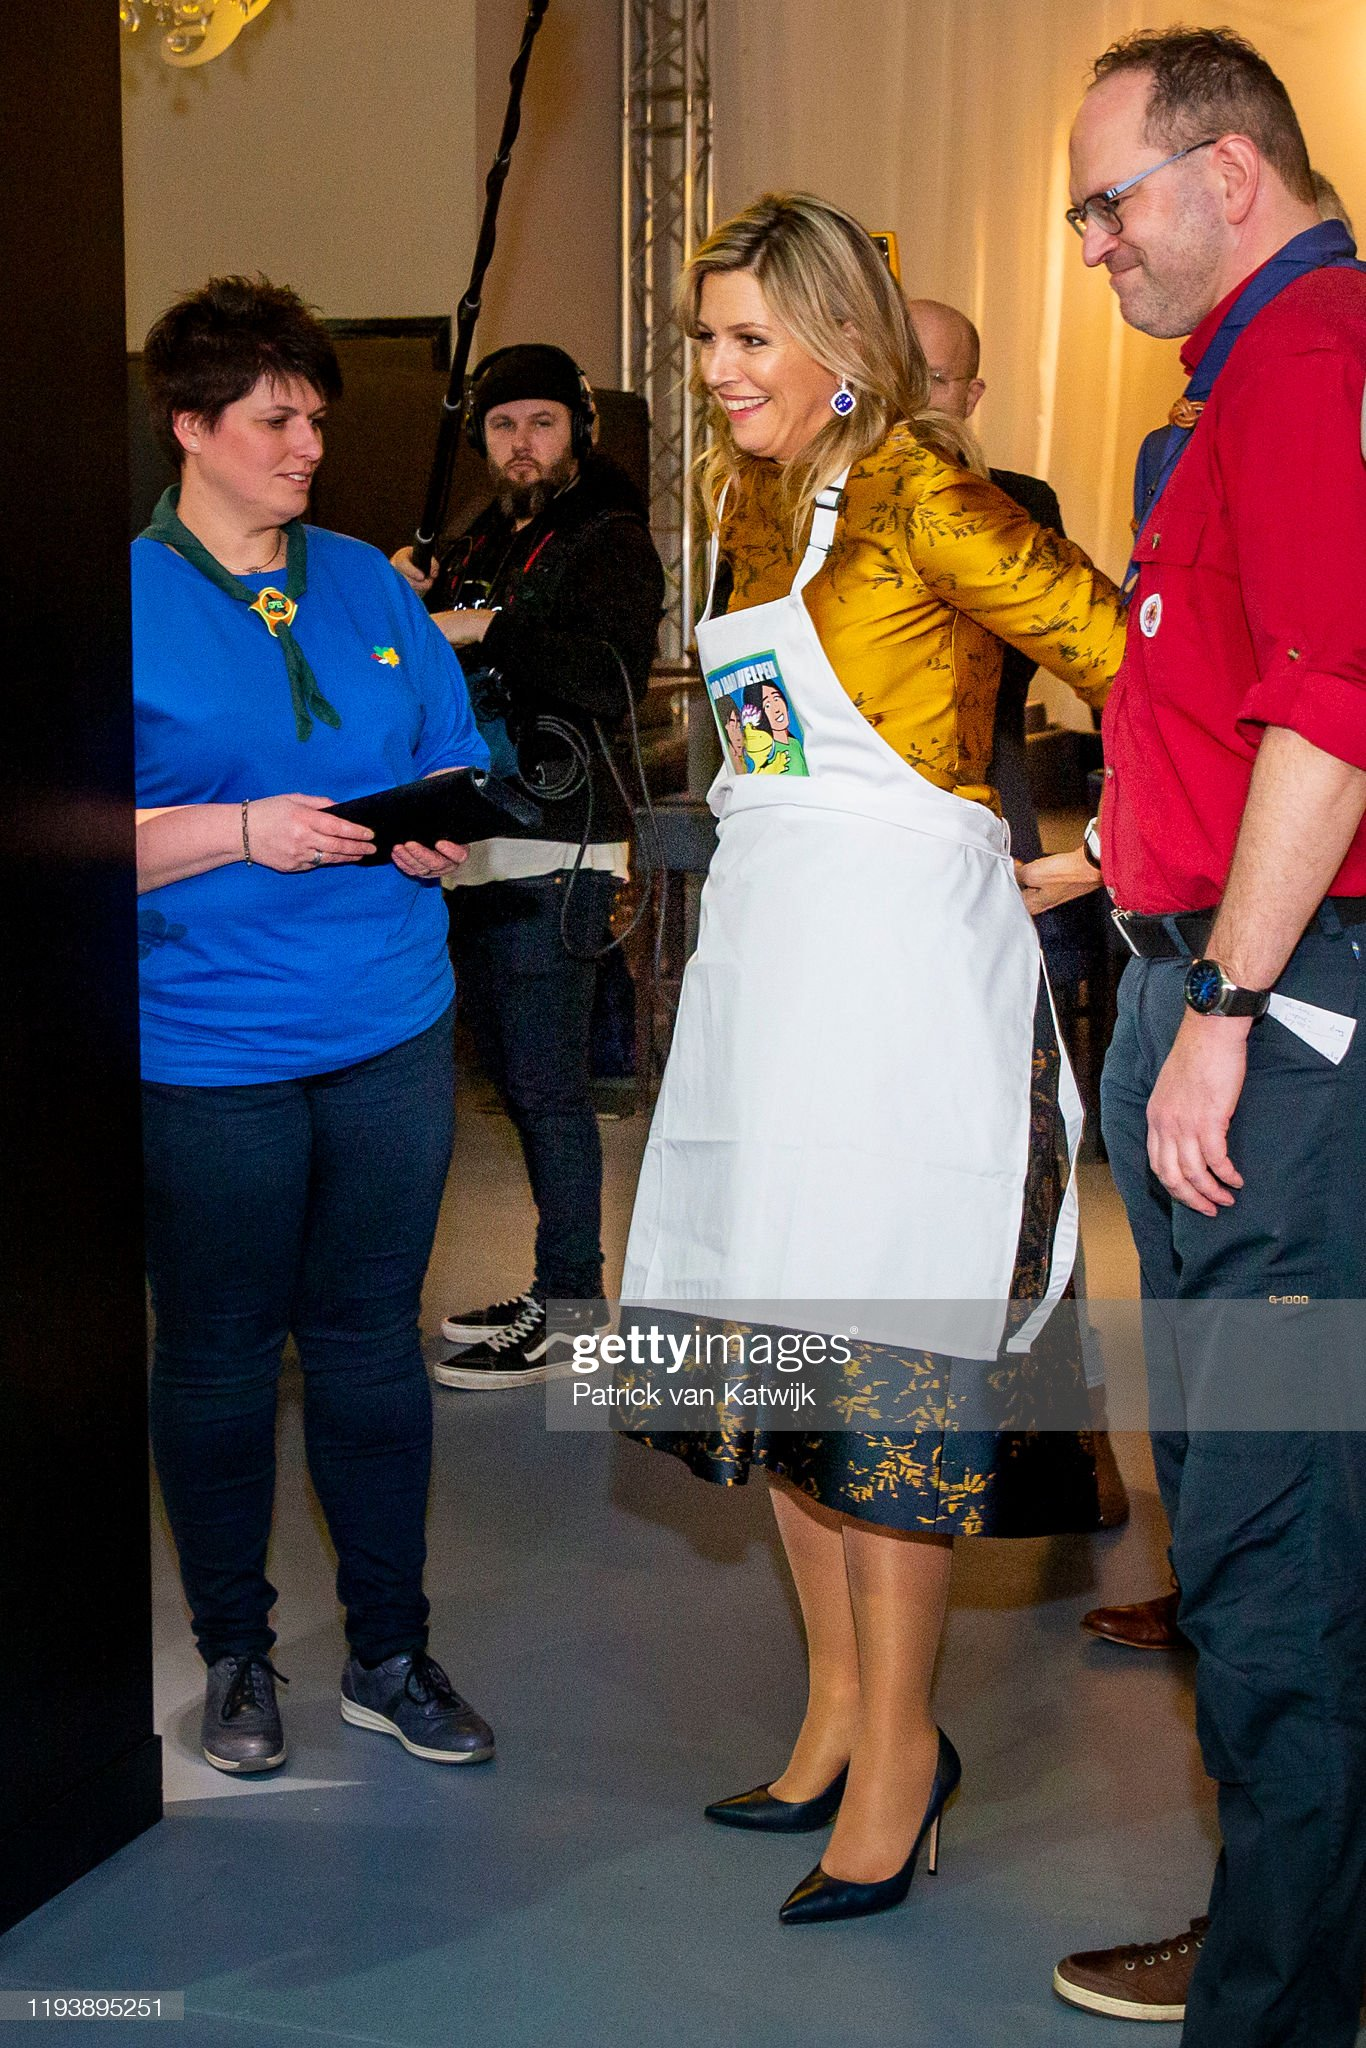 https://media.gettyimages.com/photos/queen-maxima-of-the-netherlands-during-a-visit-to-the-scouting-cubs-picture-id1193895251?s=2048x2048